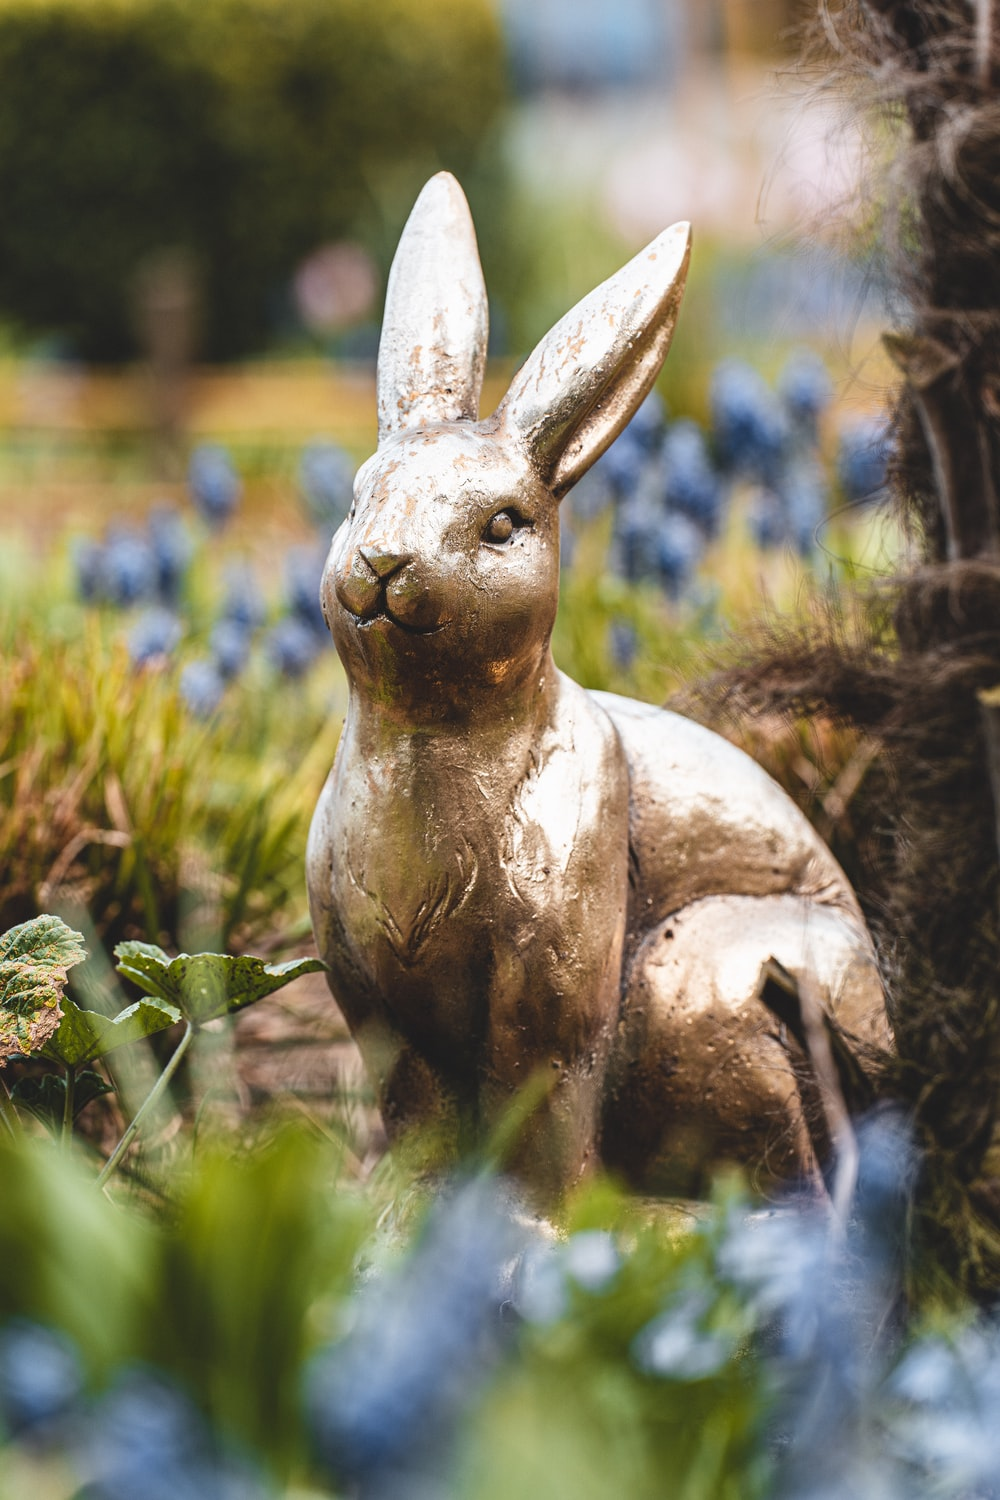 brown rabbit statue on green grass during daytime